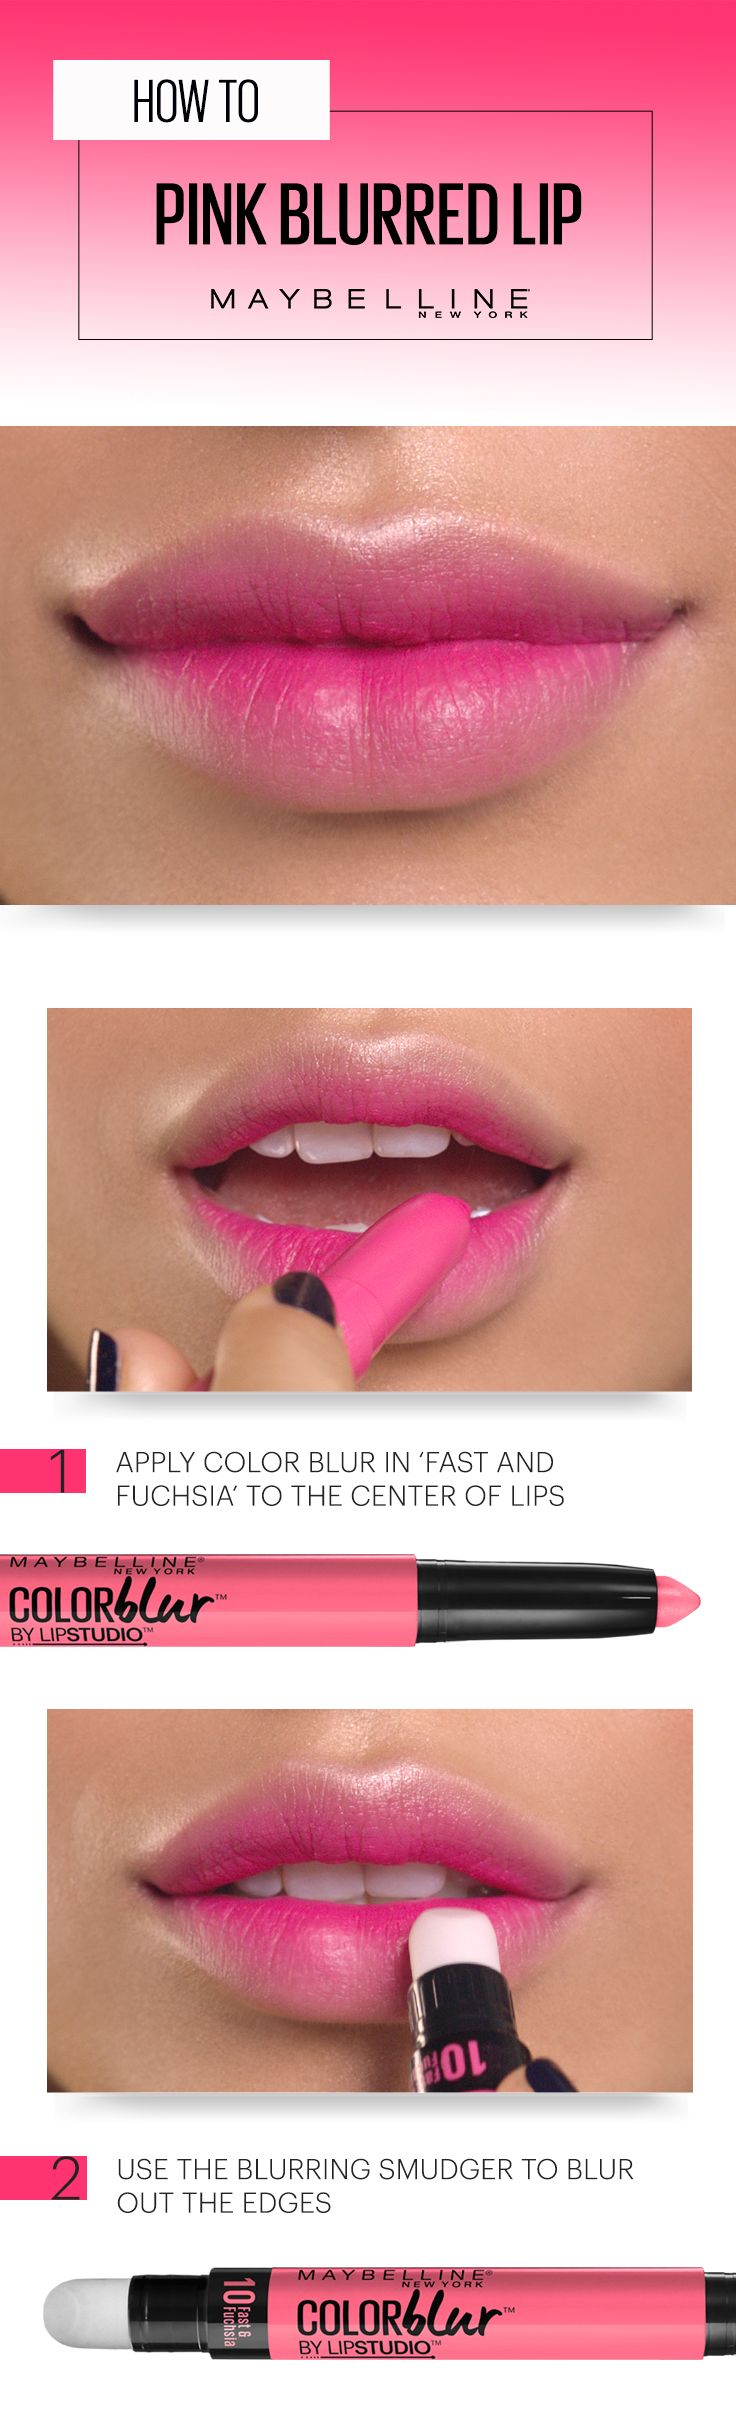 Tip on a matte lips